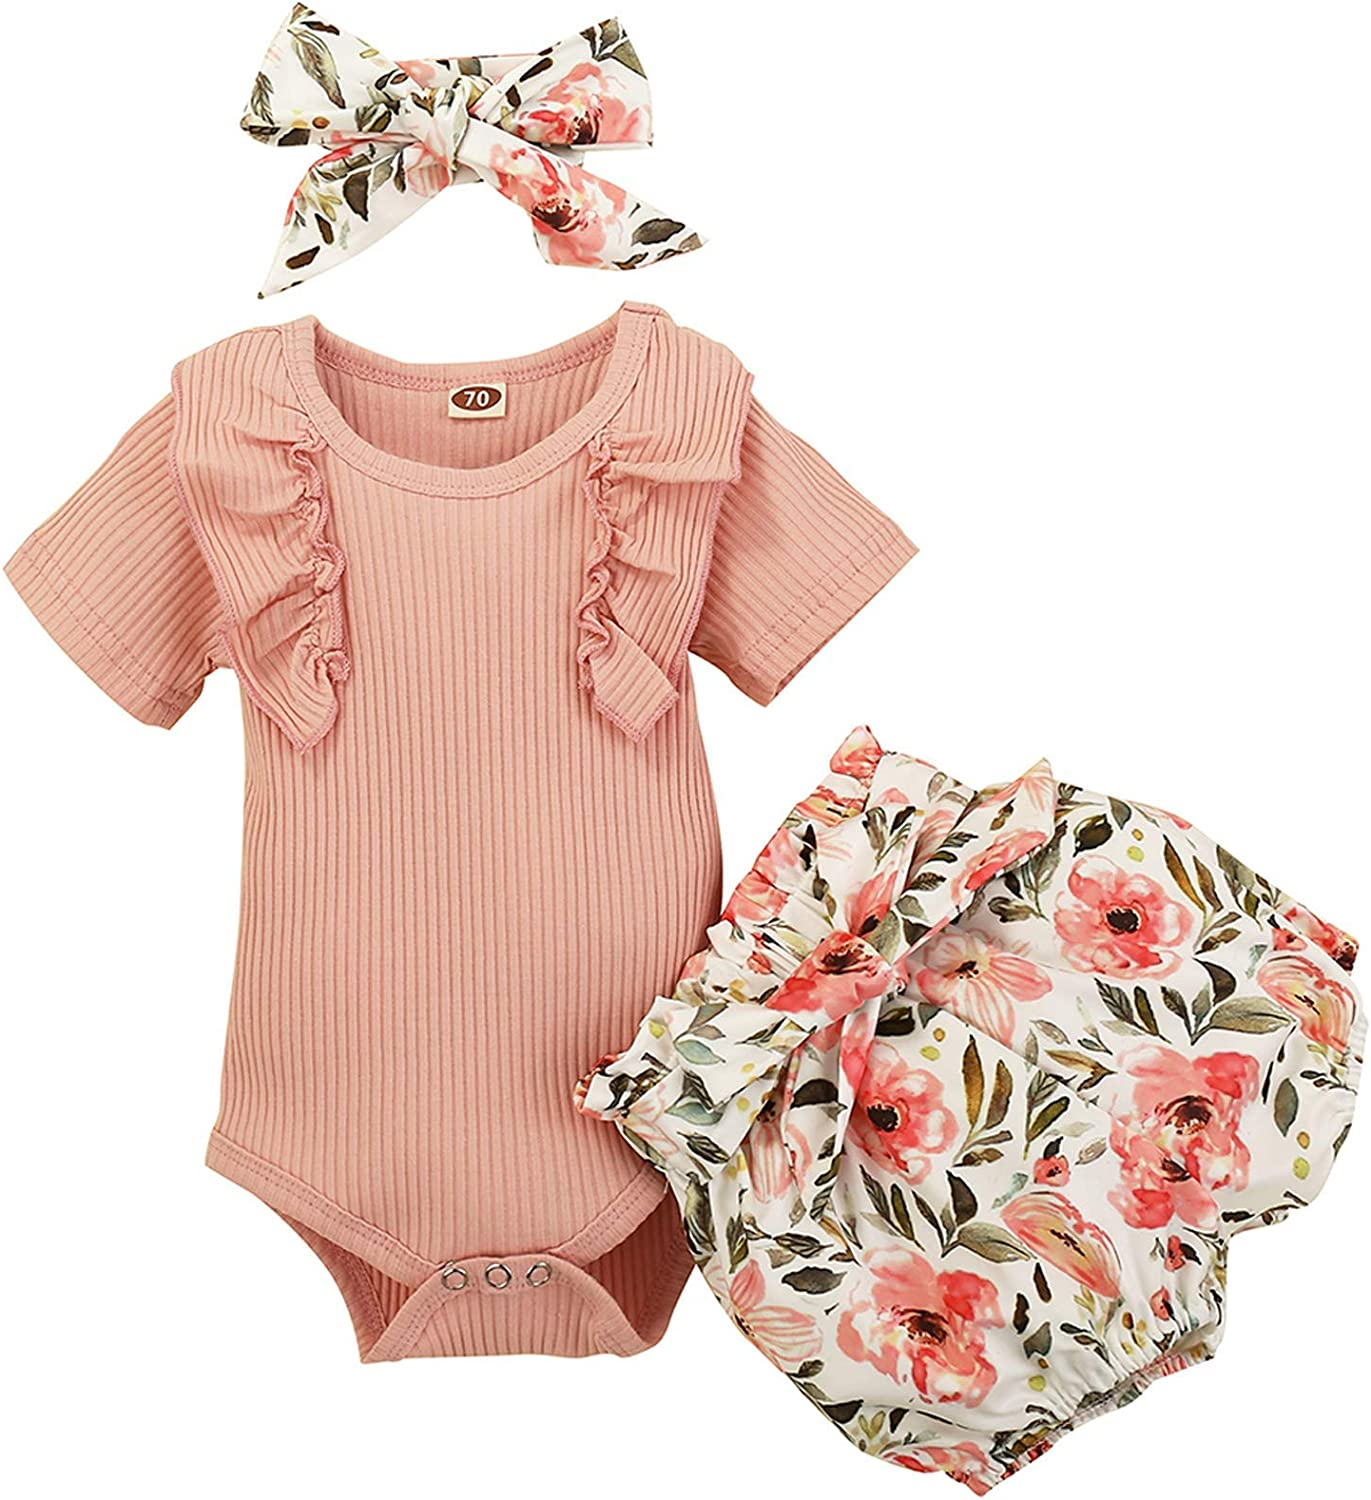 Newborn Toddler Baby Girl 3PCS Shorts Clothes Set Short Sleeve Ruffle Romper Top Floral Pants Summer Outfit